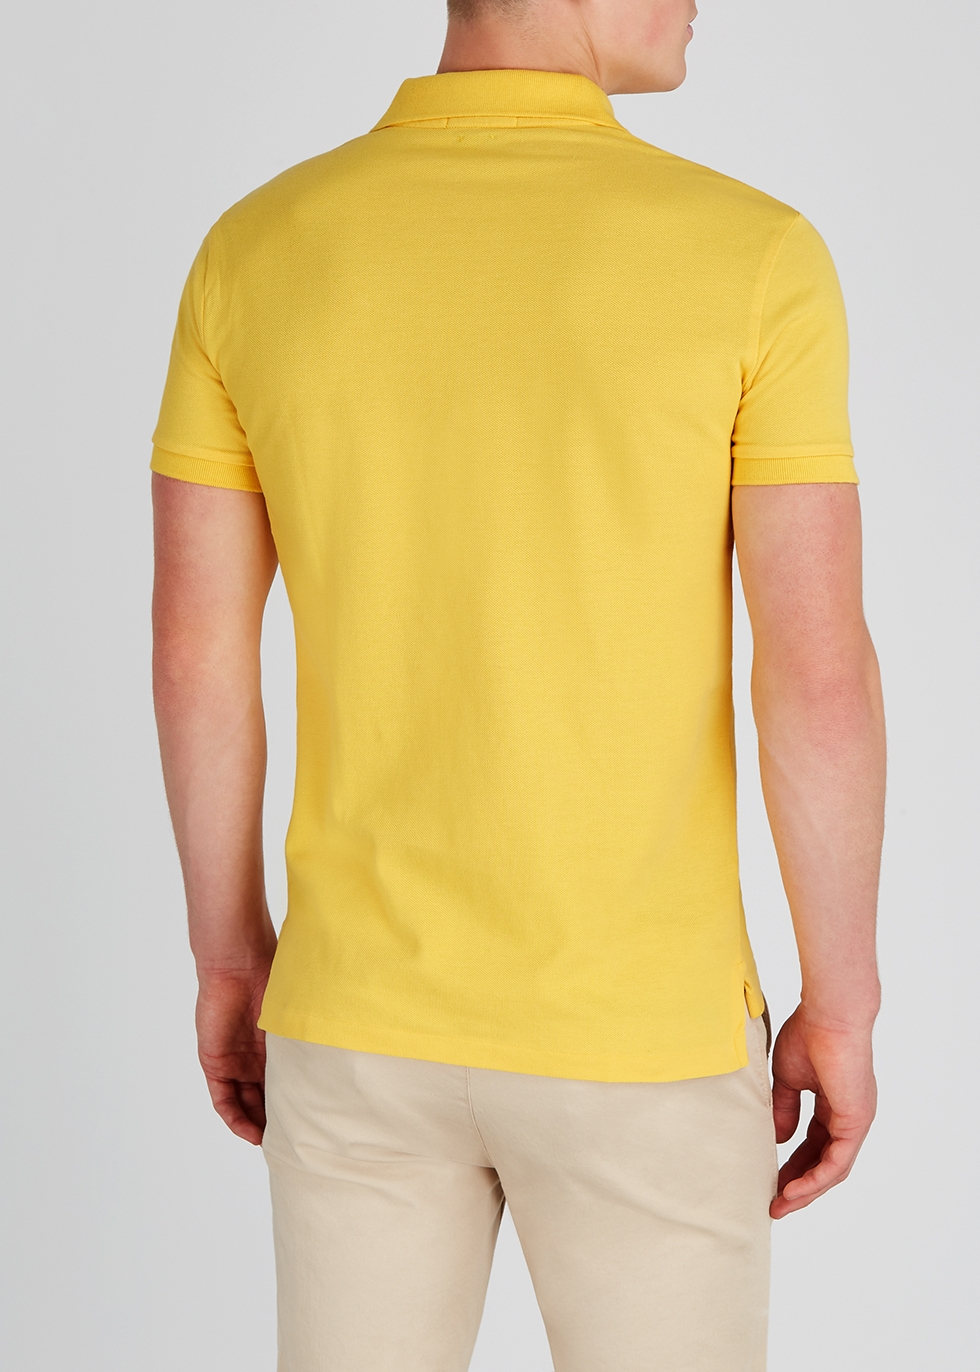 Lauren Nichols Piqué Yellow Polo Cotton Shirt Harvey Ralph J3uFKlT1c